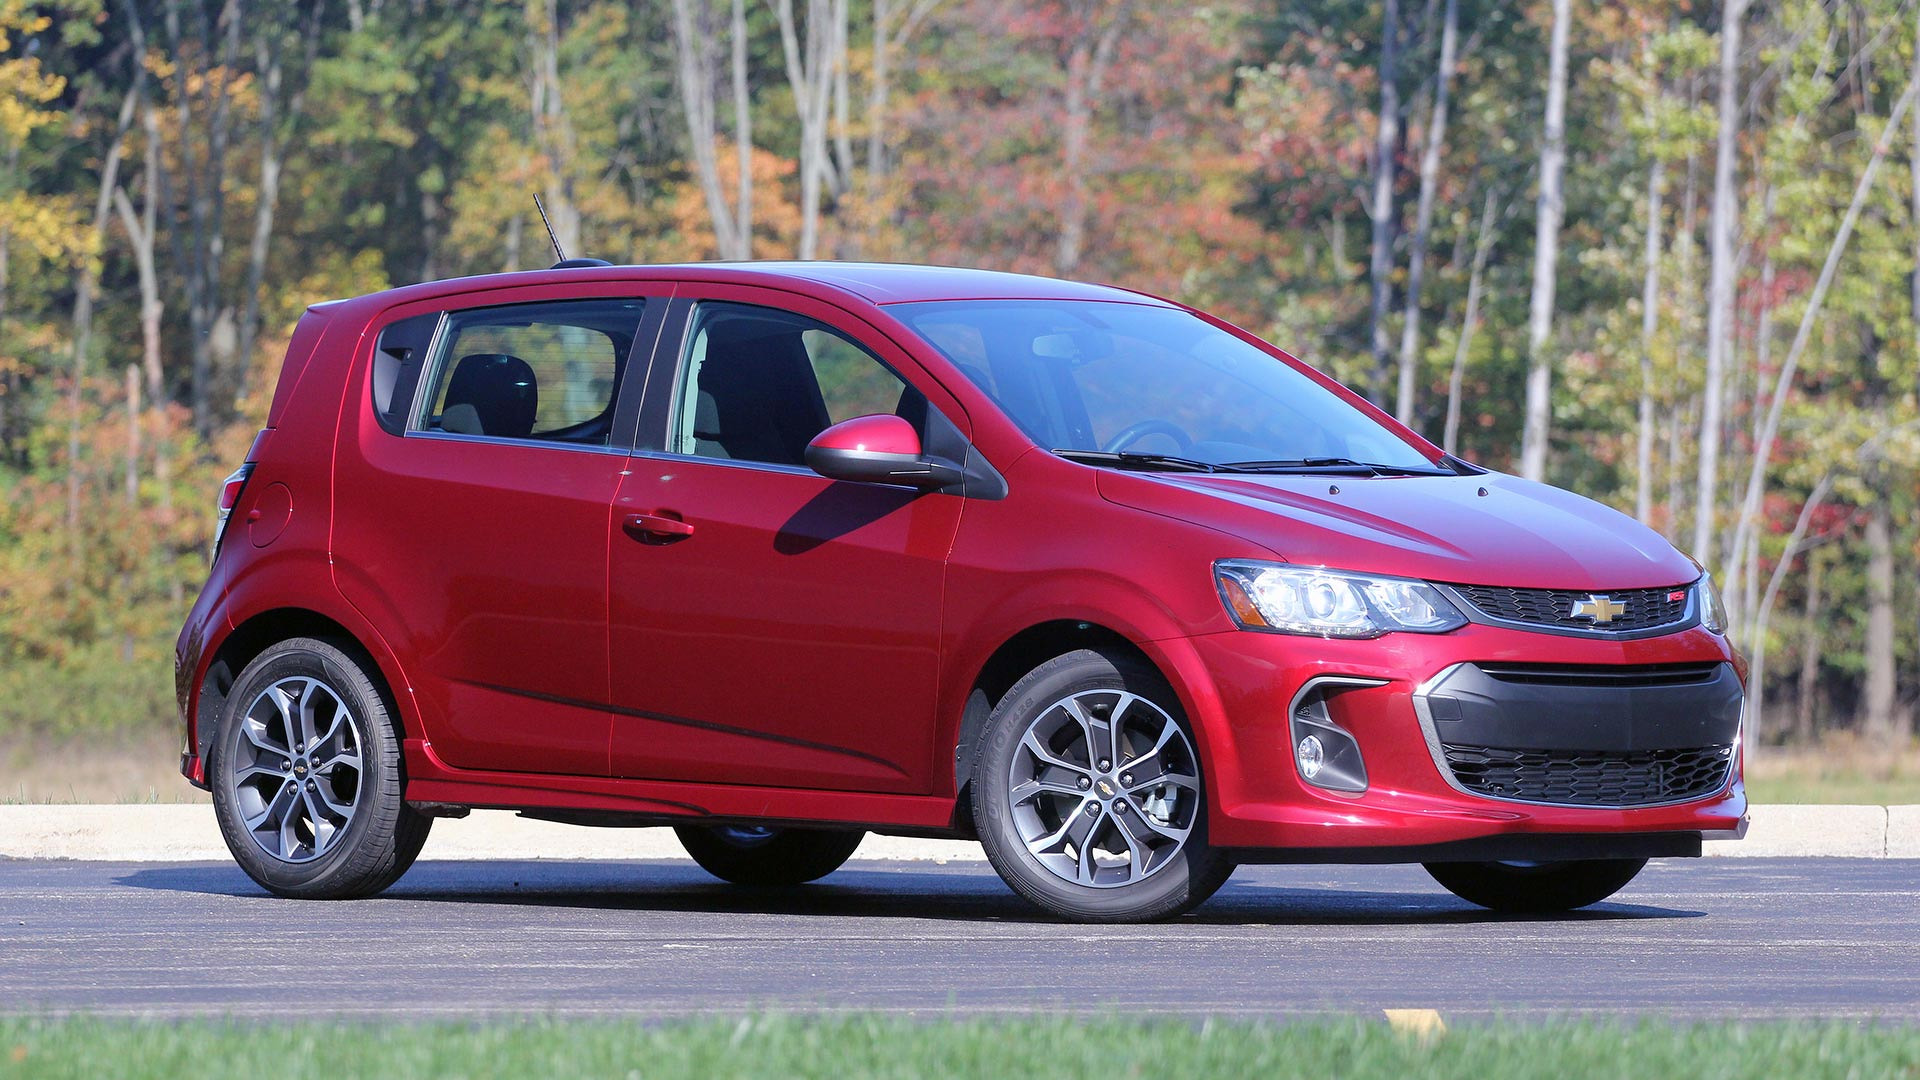 93 A 2020 Chevy Sonic Redesign and Review